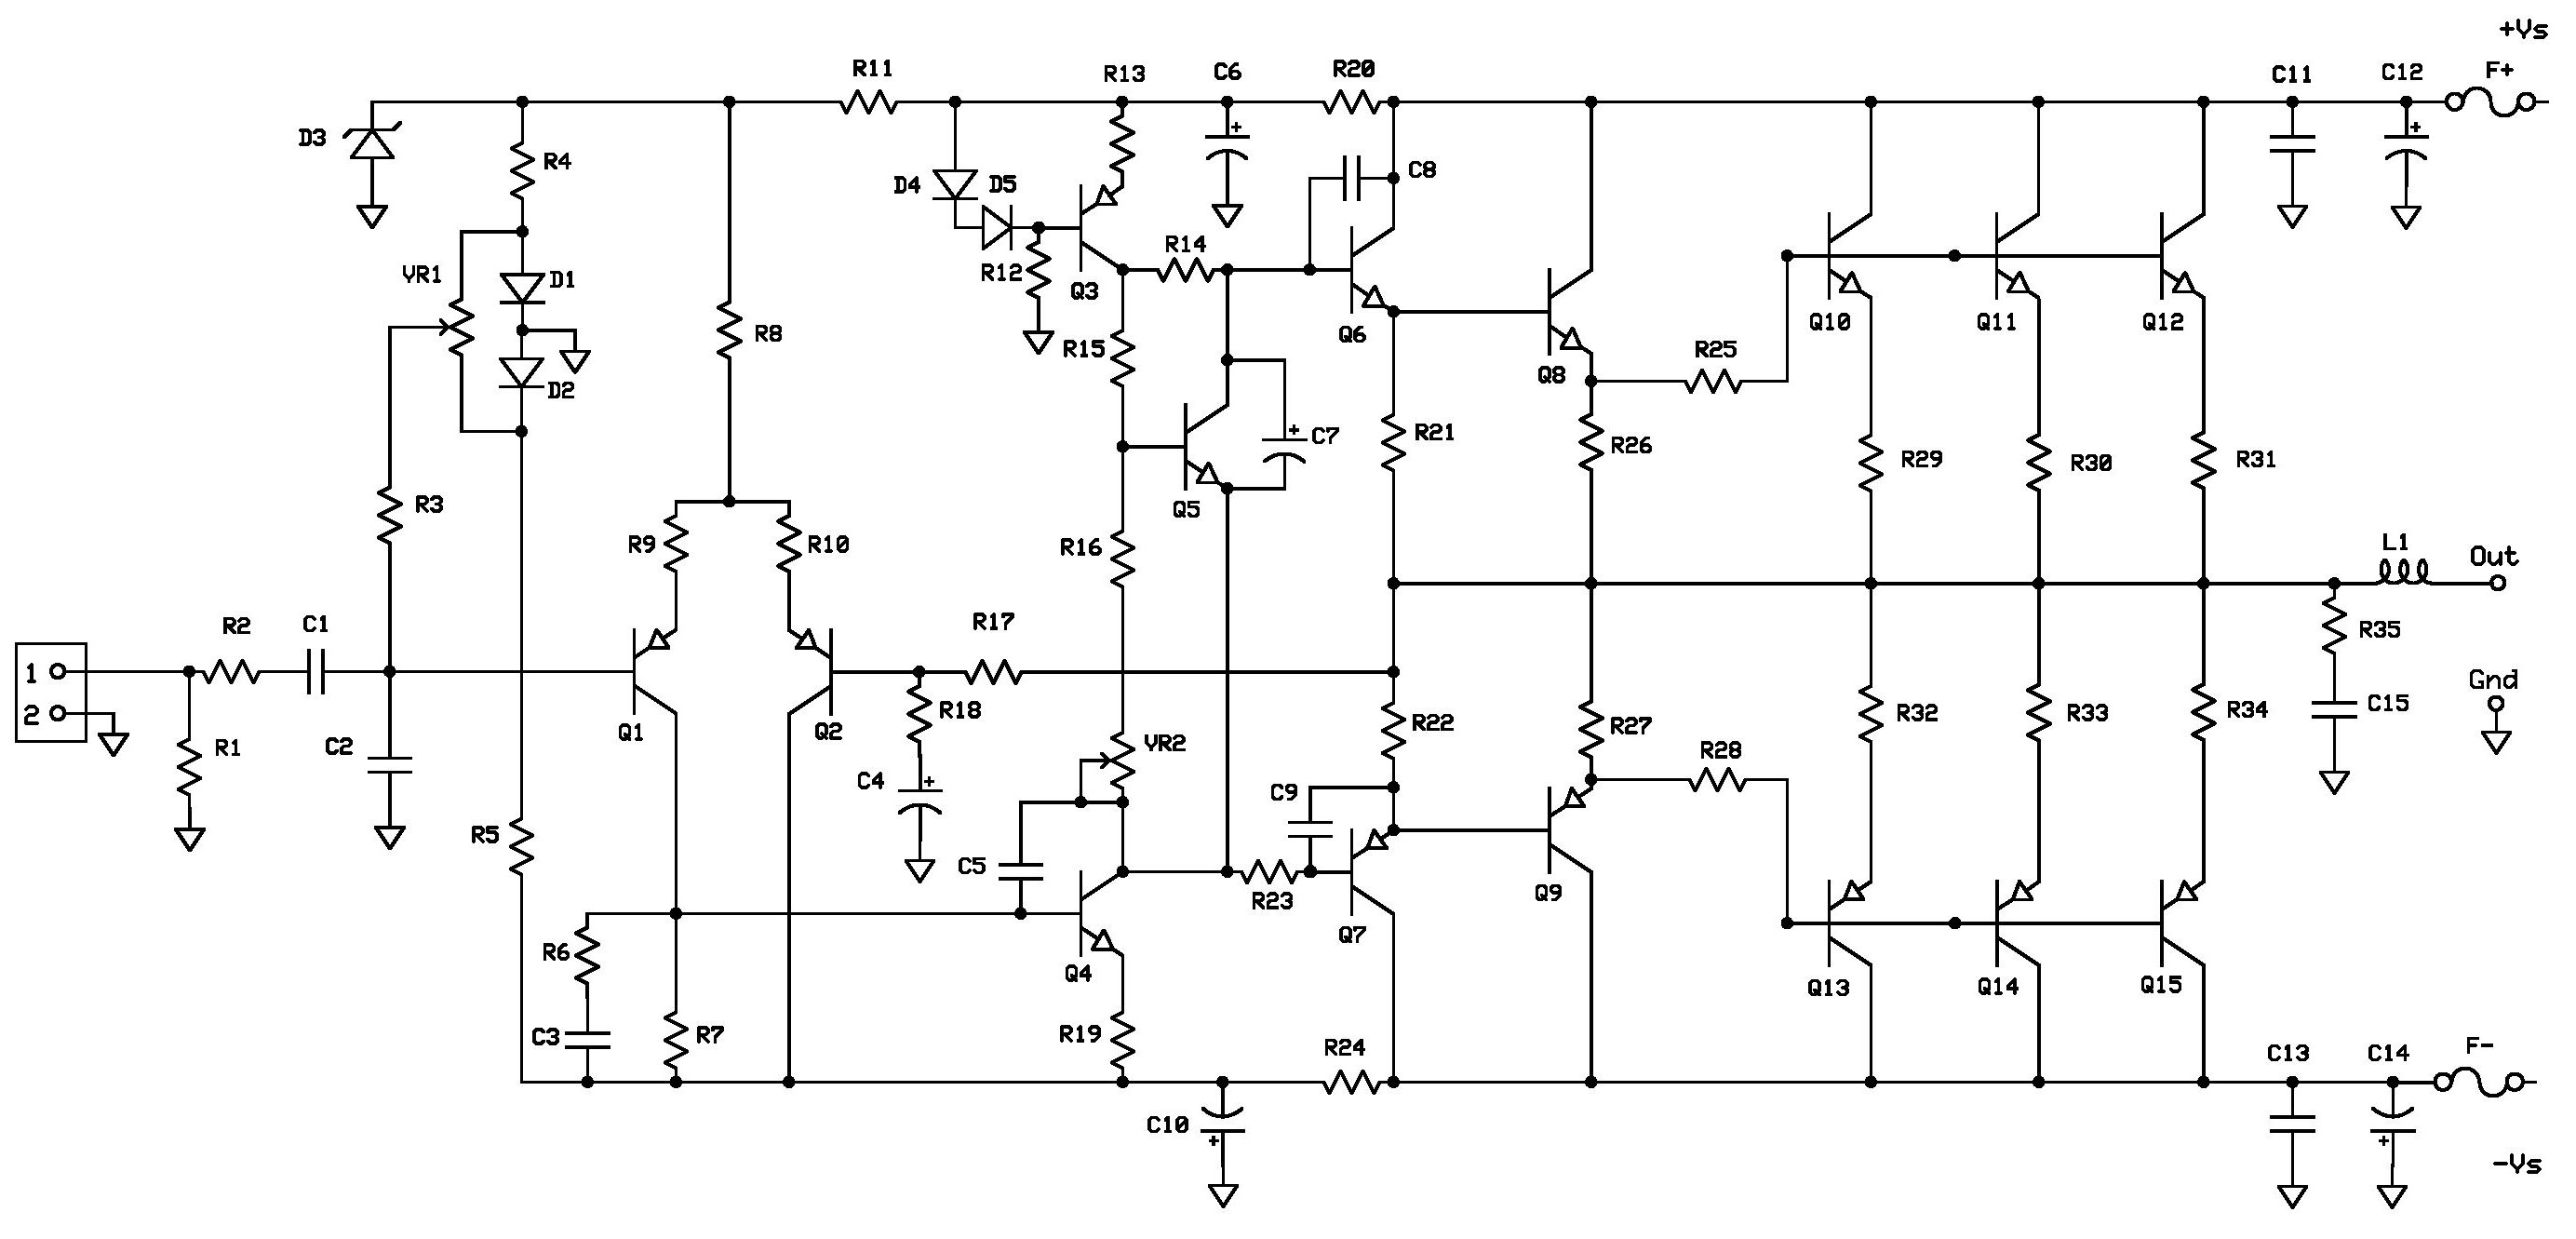 T Amp Circuit Diagram Wiring Library Current Detection Part Amplifiercircuit Project2 Schematic Page 001